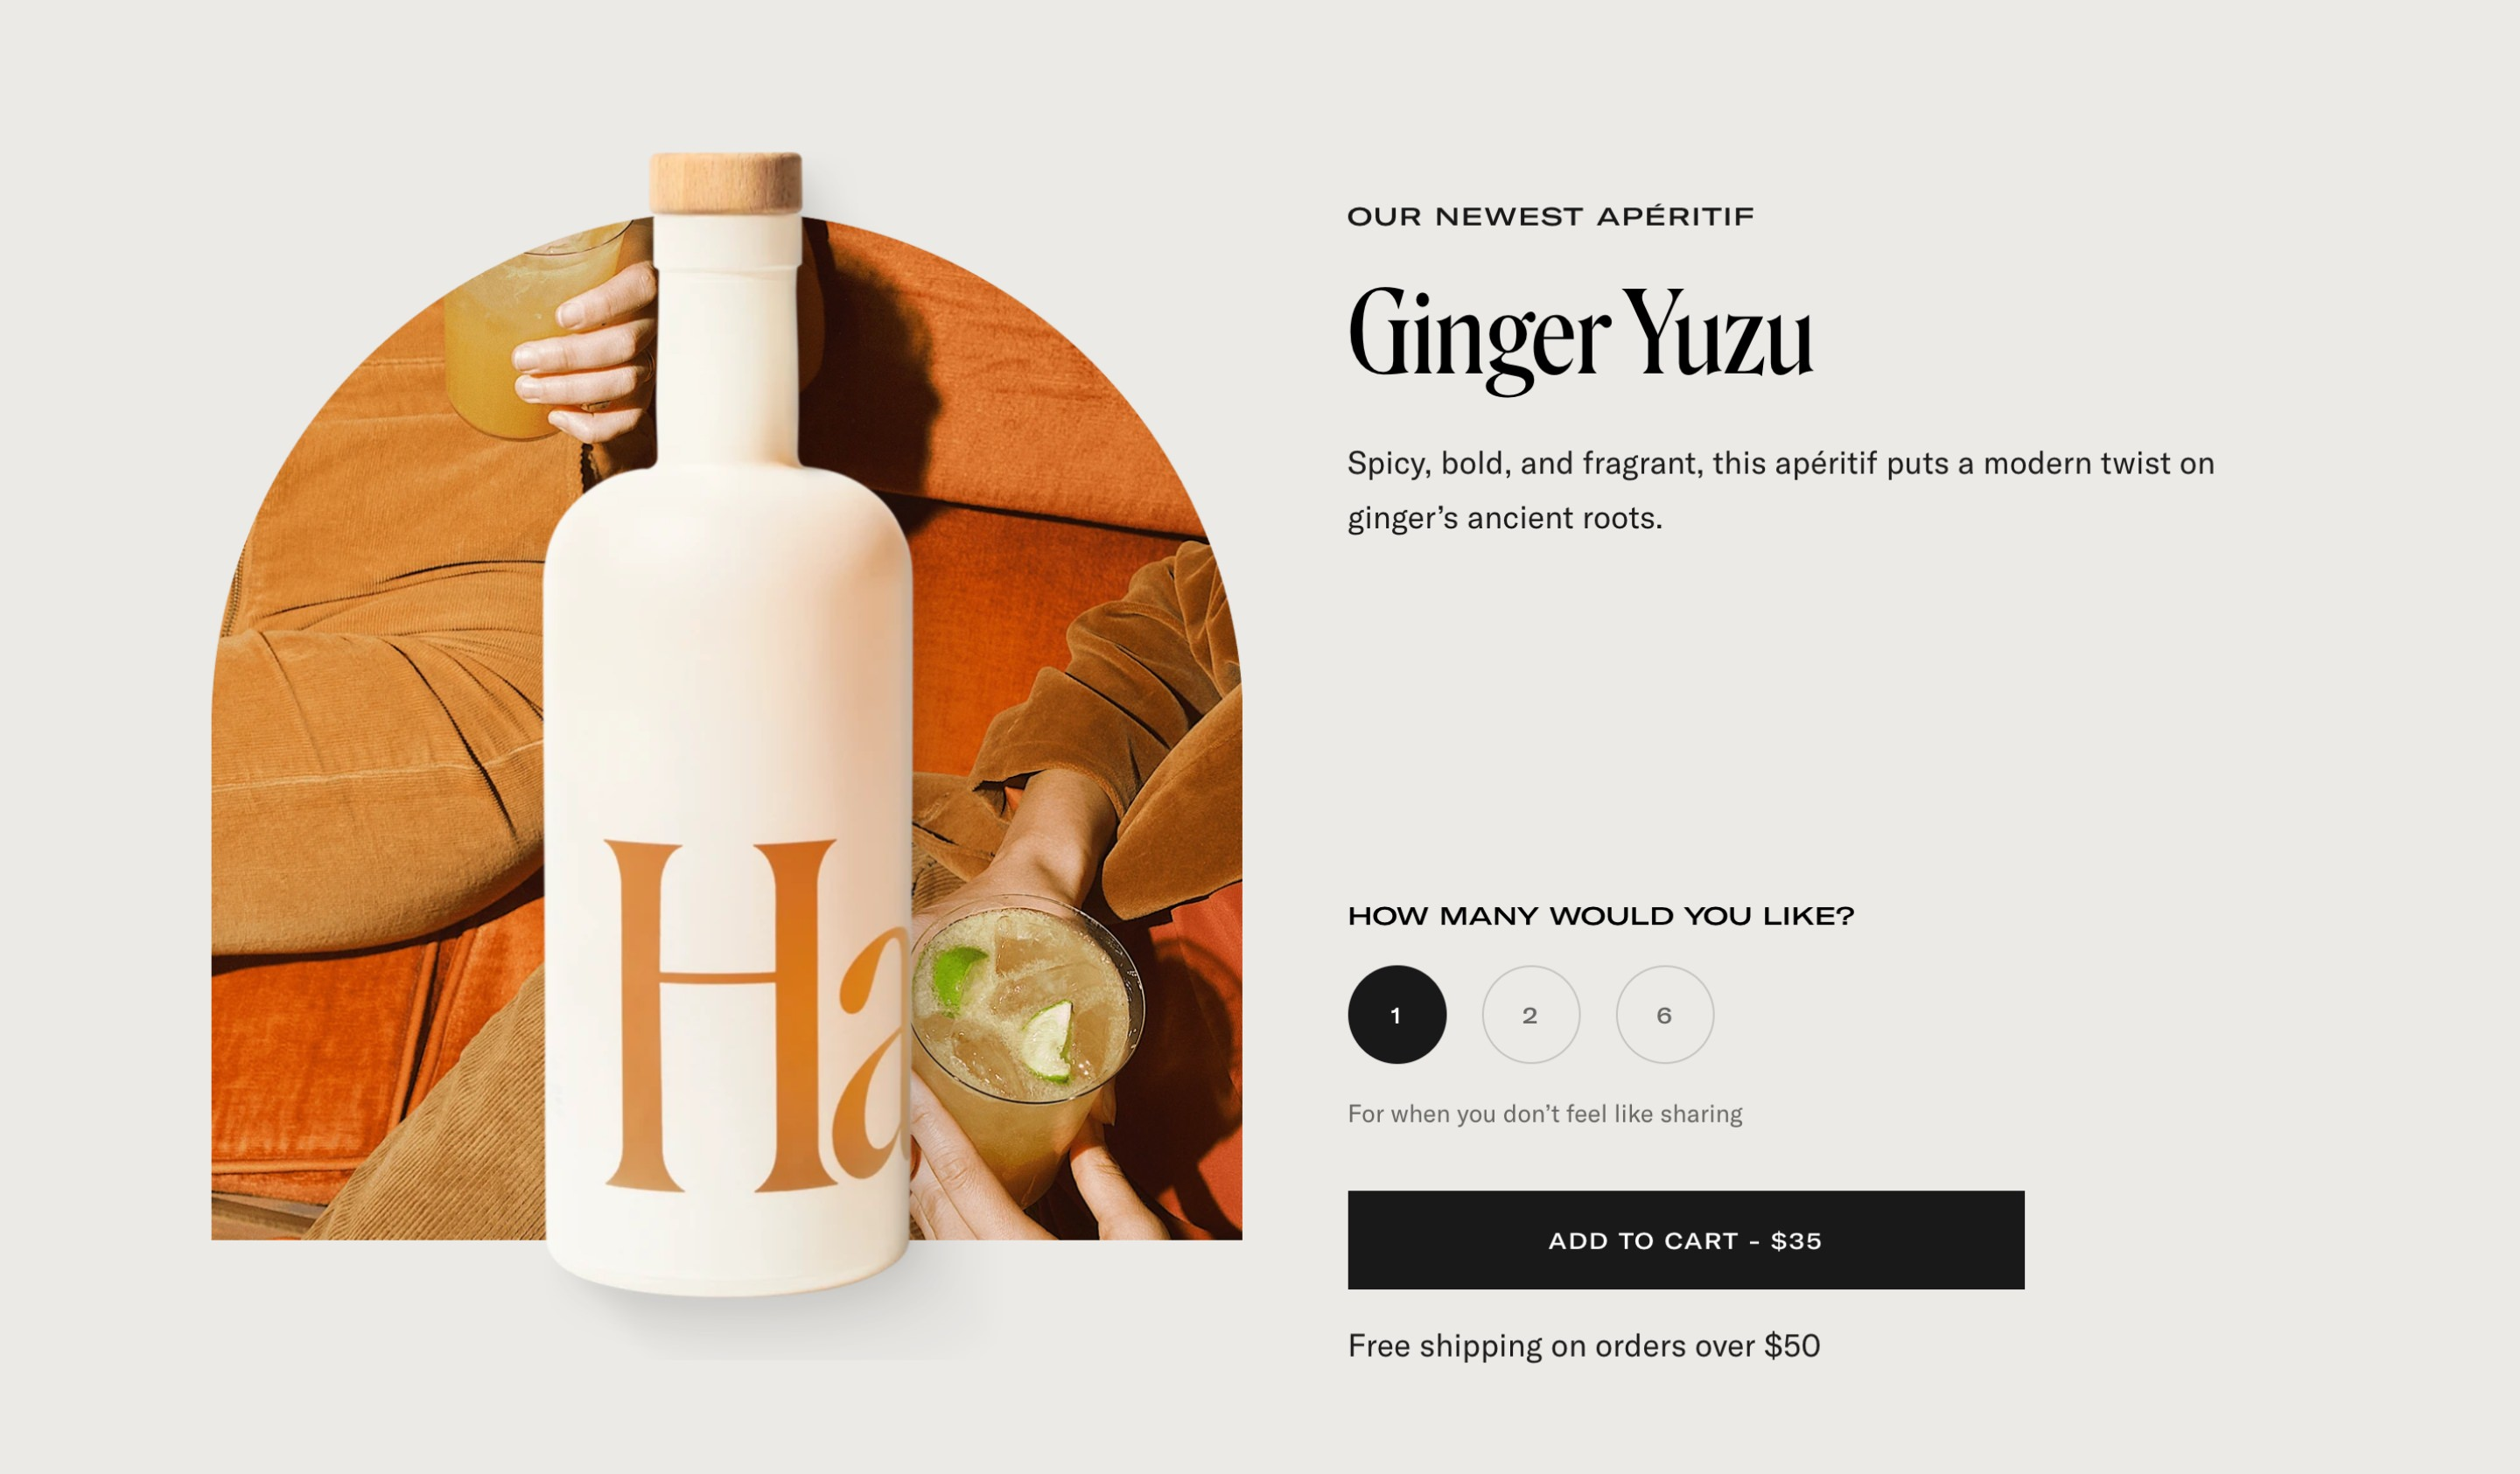 Product Details with Elegant Typography